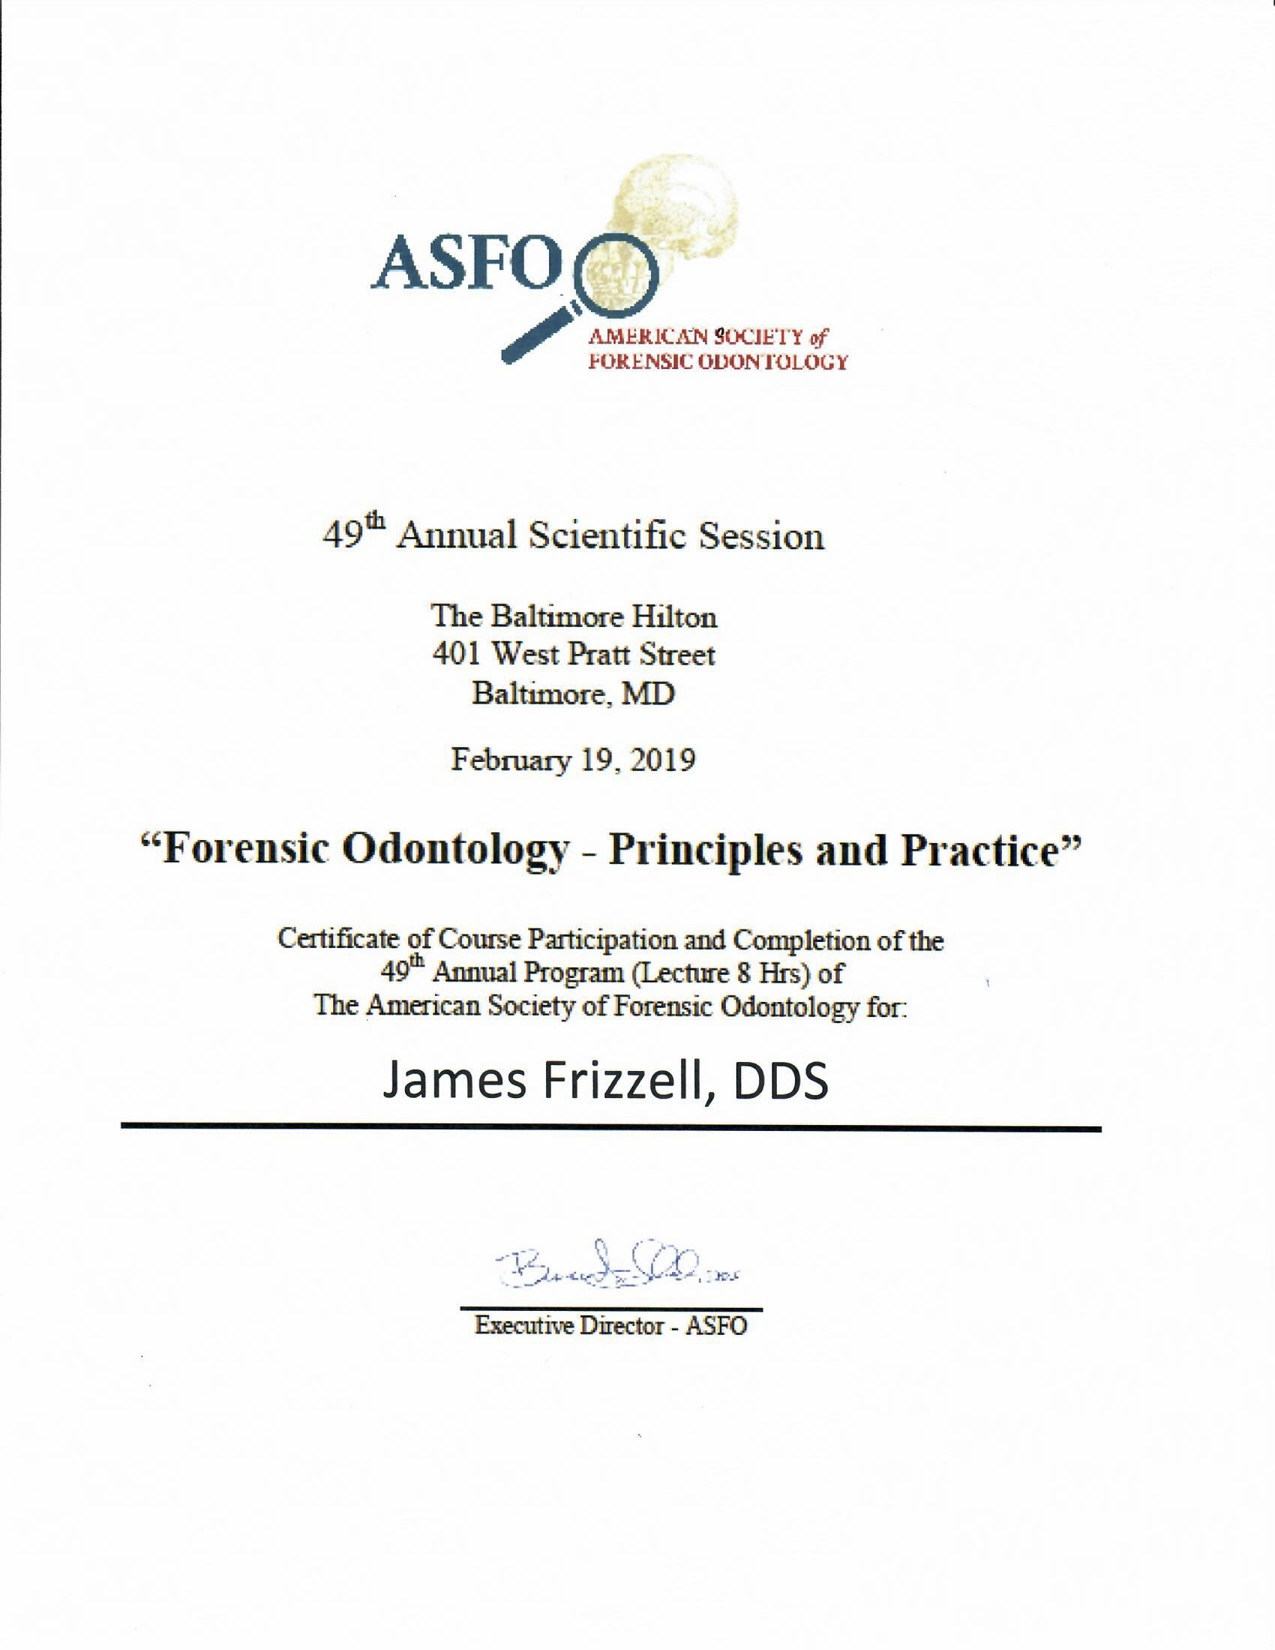 Forensic Odontology - Principles and Practice Cert